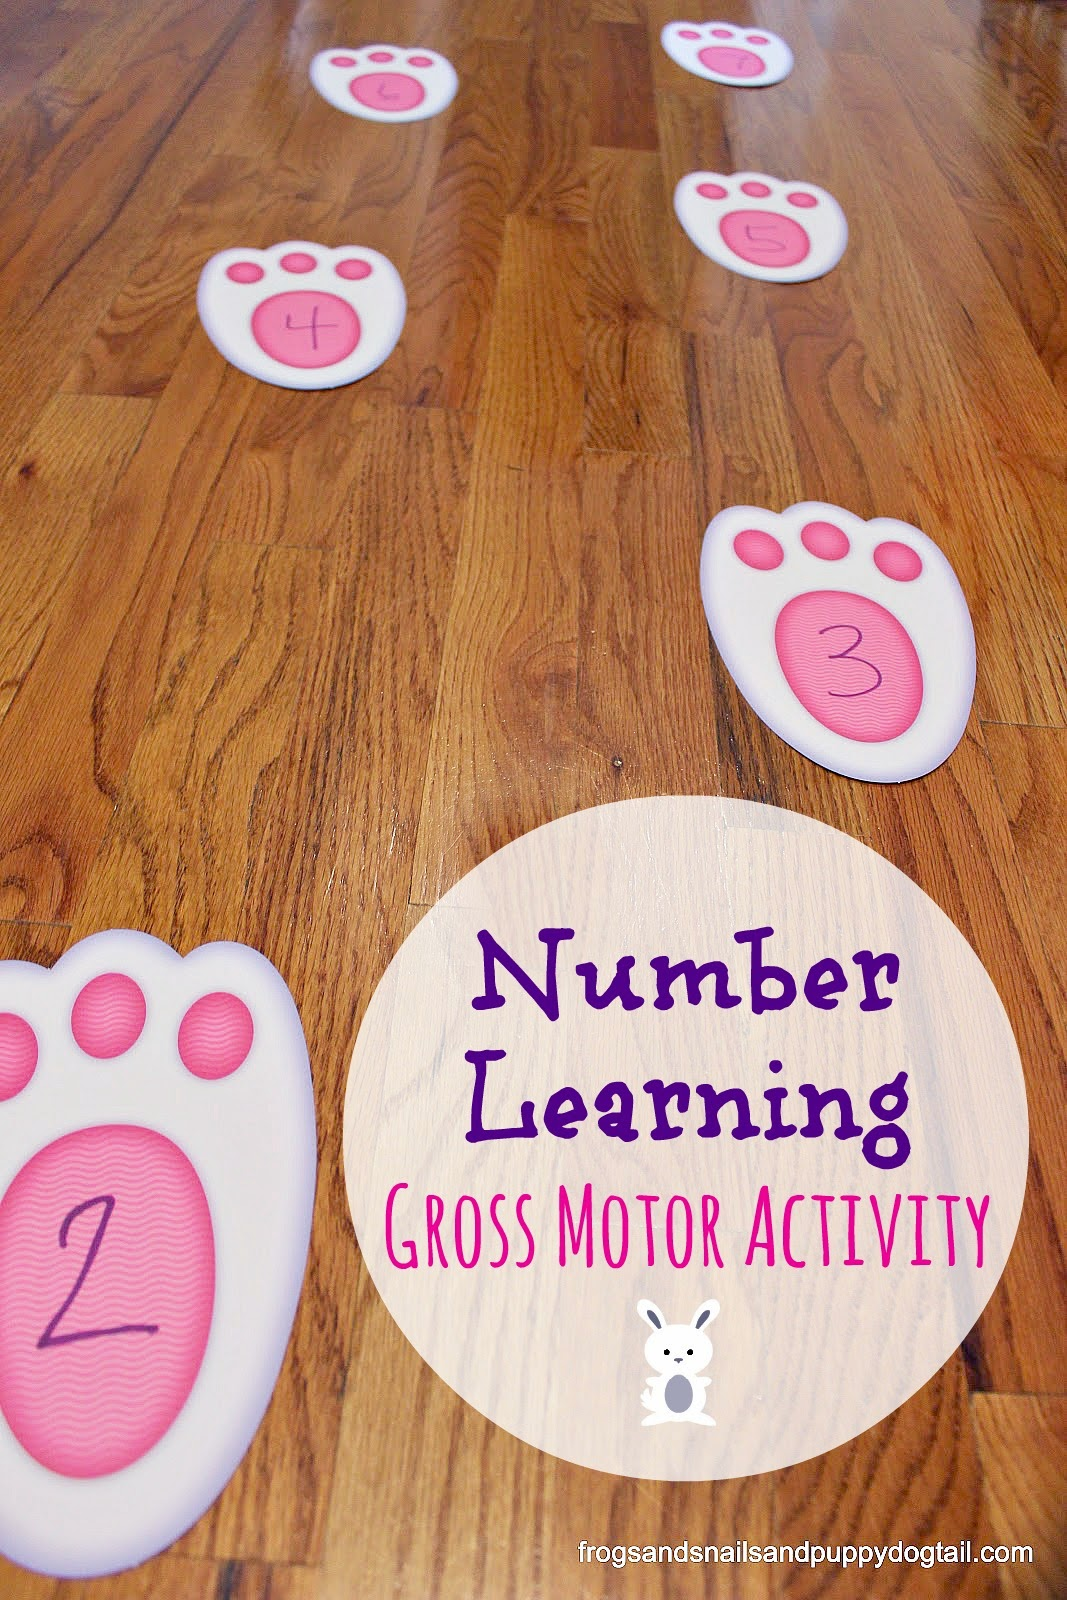 Number Learning Gross Motor Activity